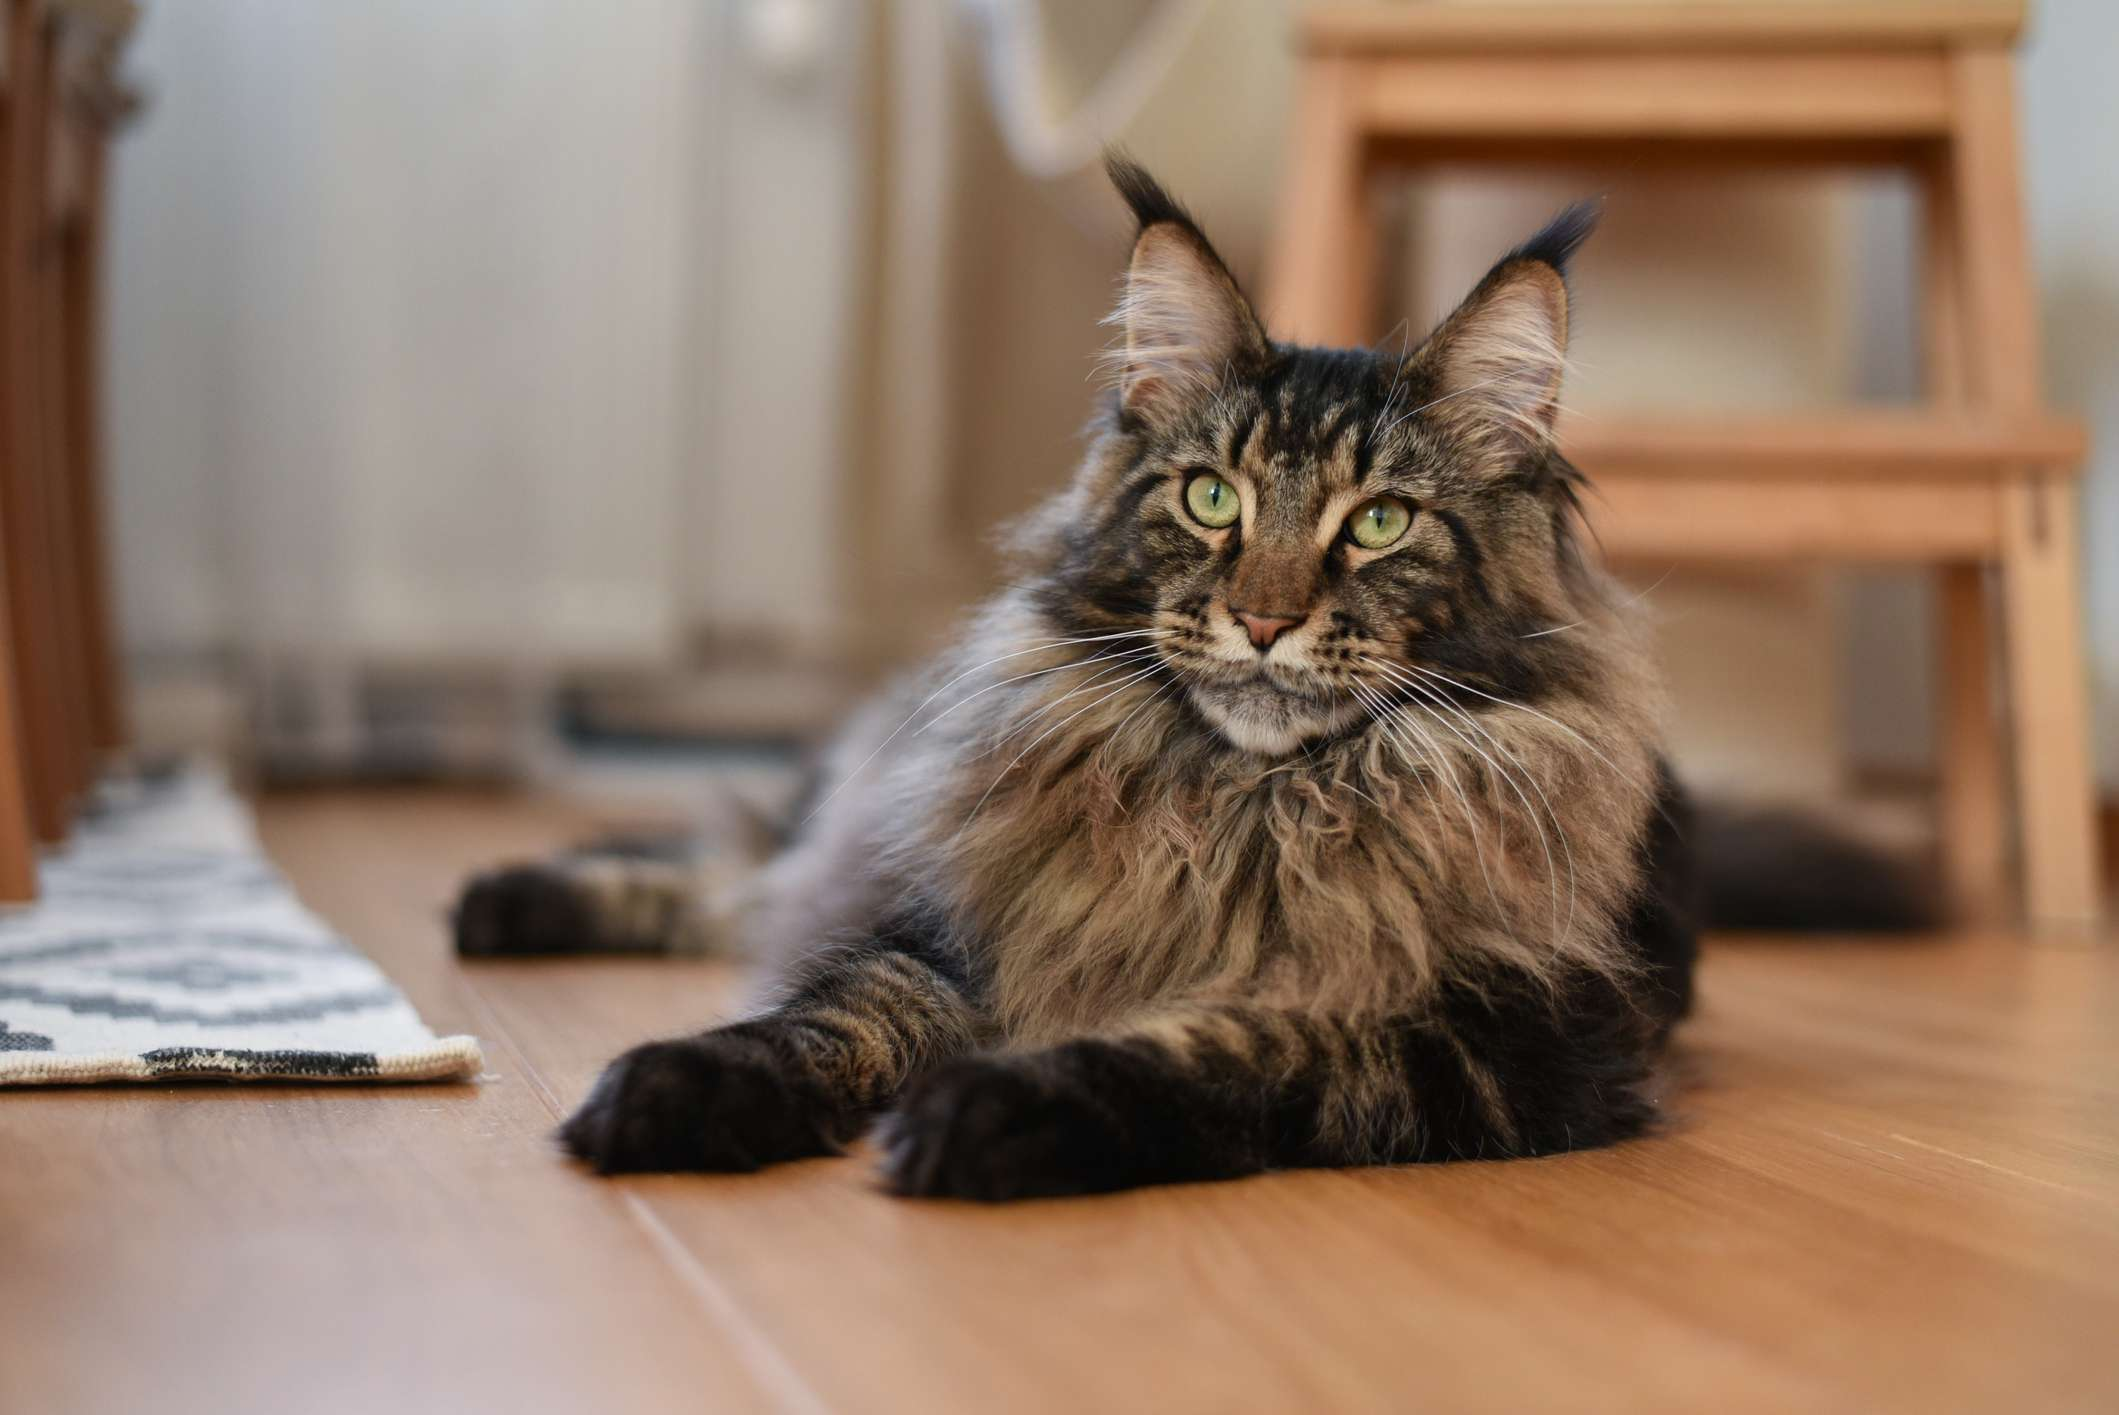 Maine coon cat with paws out, lying on floor